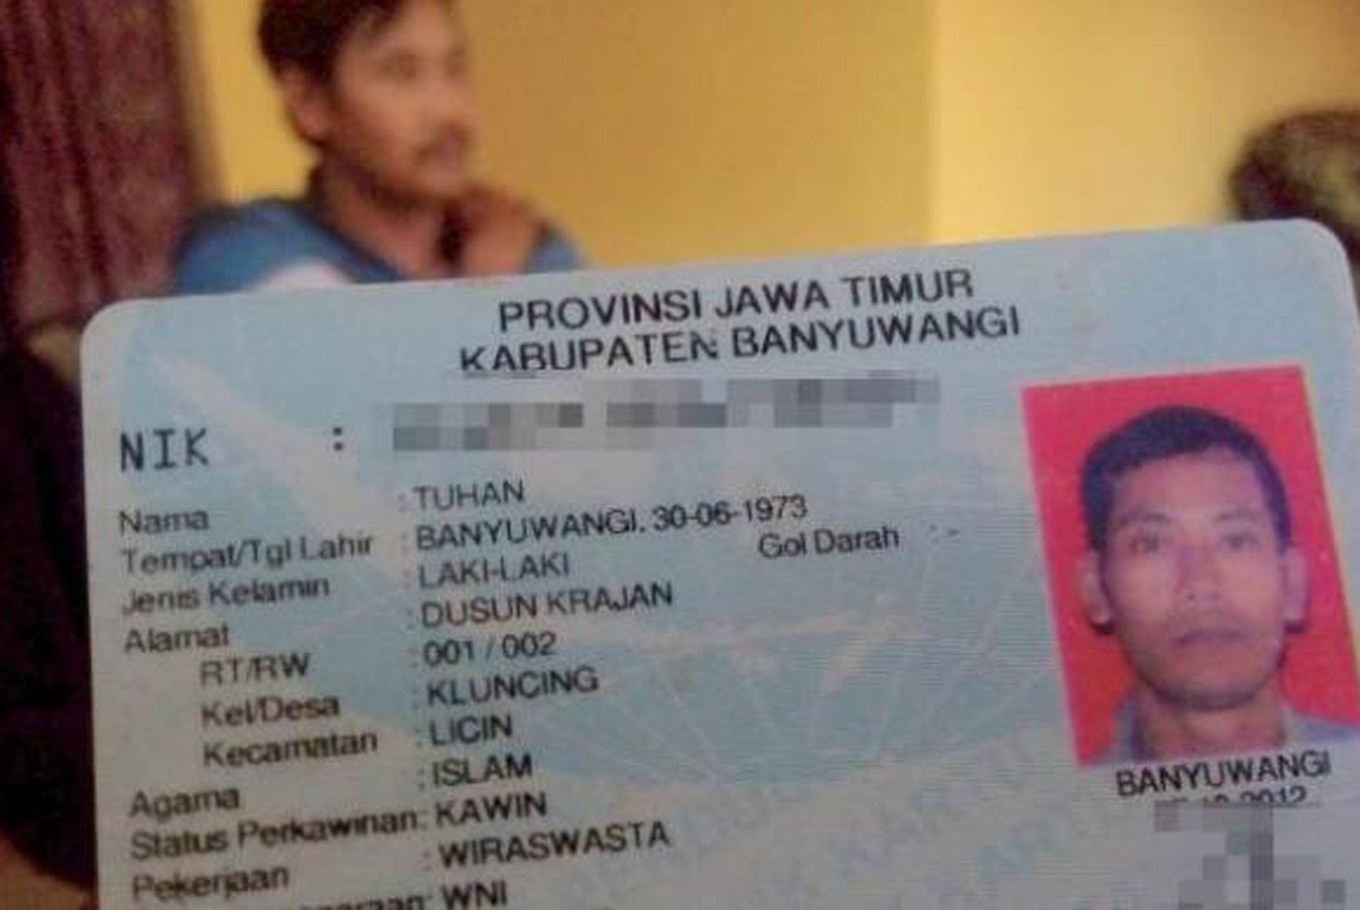 Keep the faith: Bandung issues first ID cards with native religion column